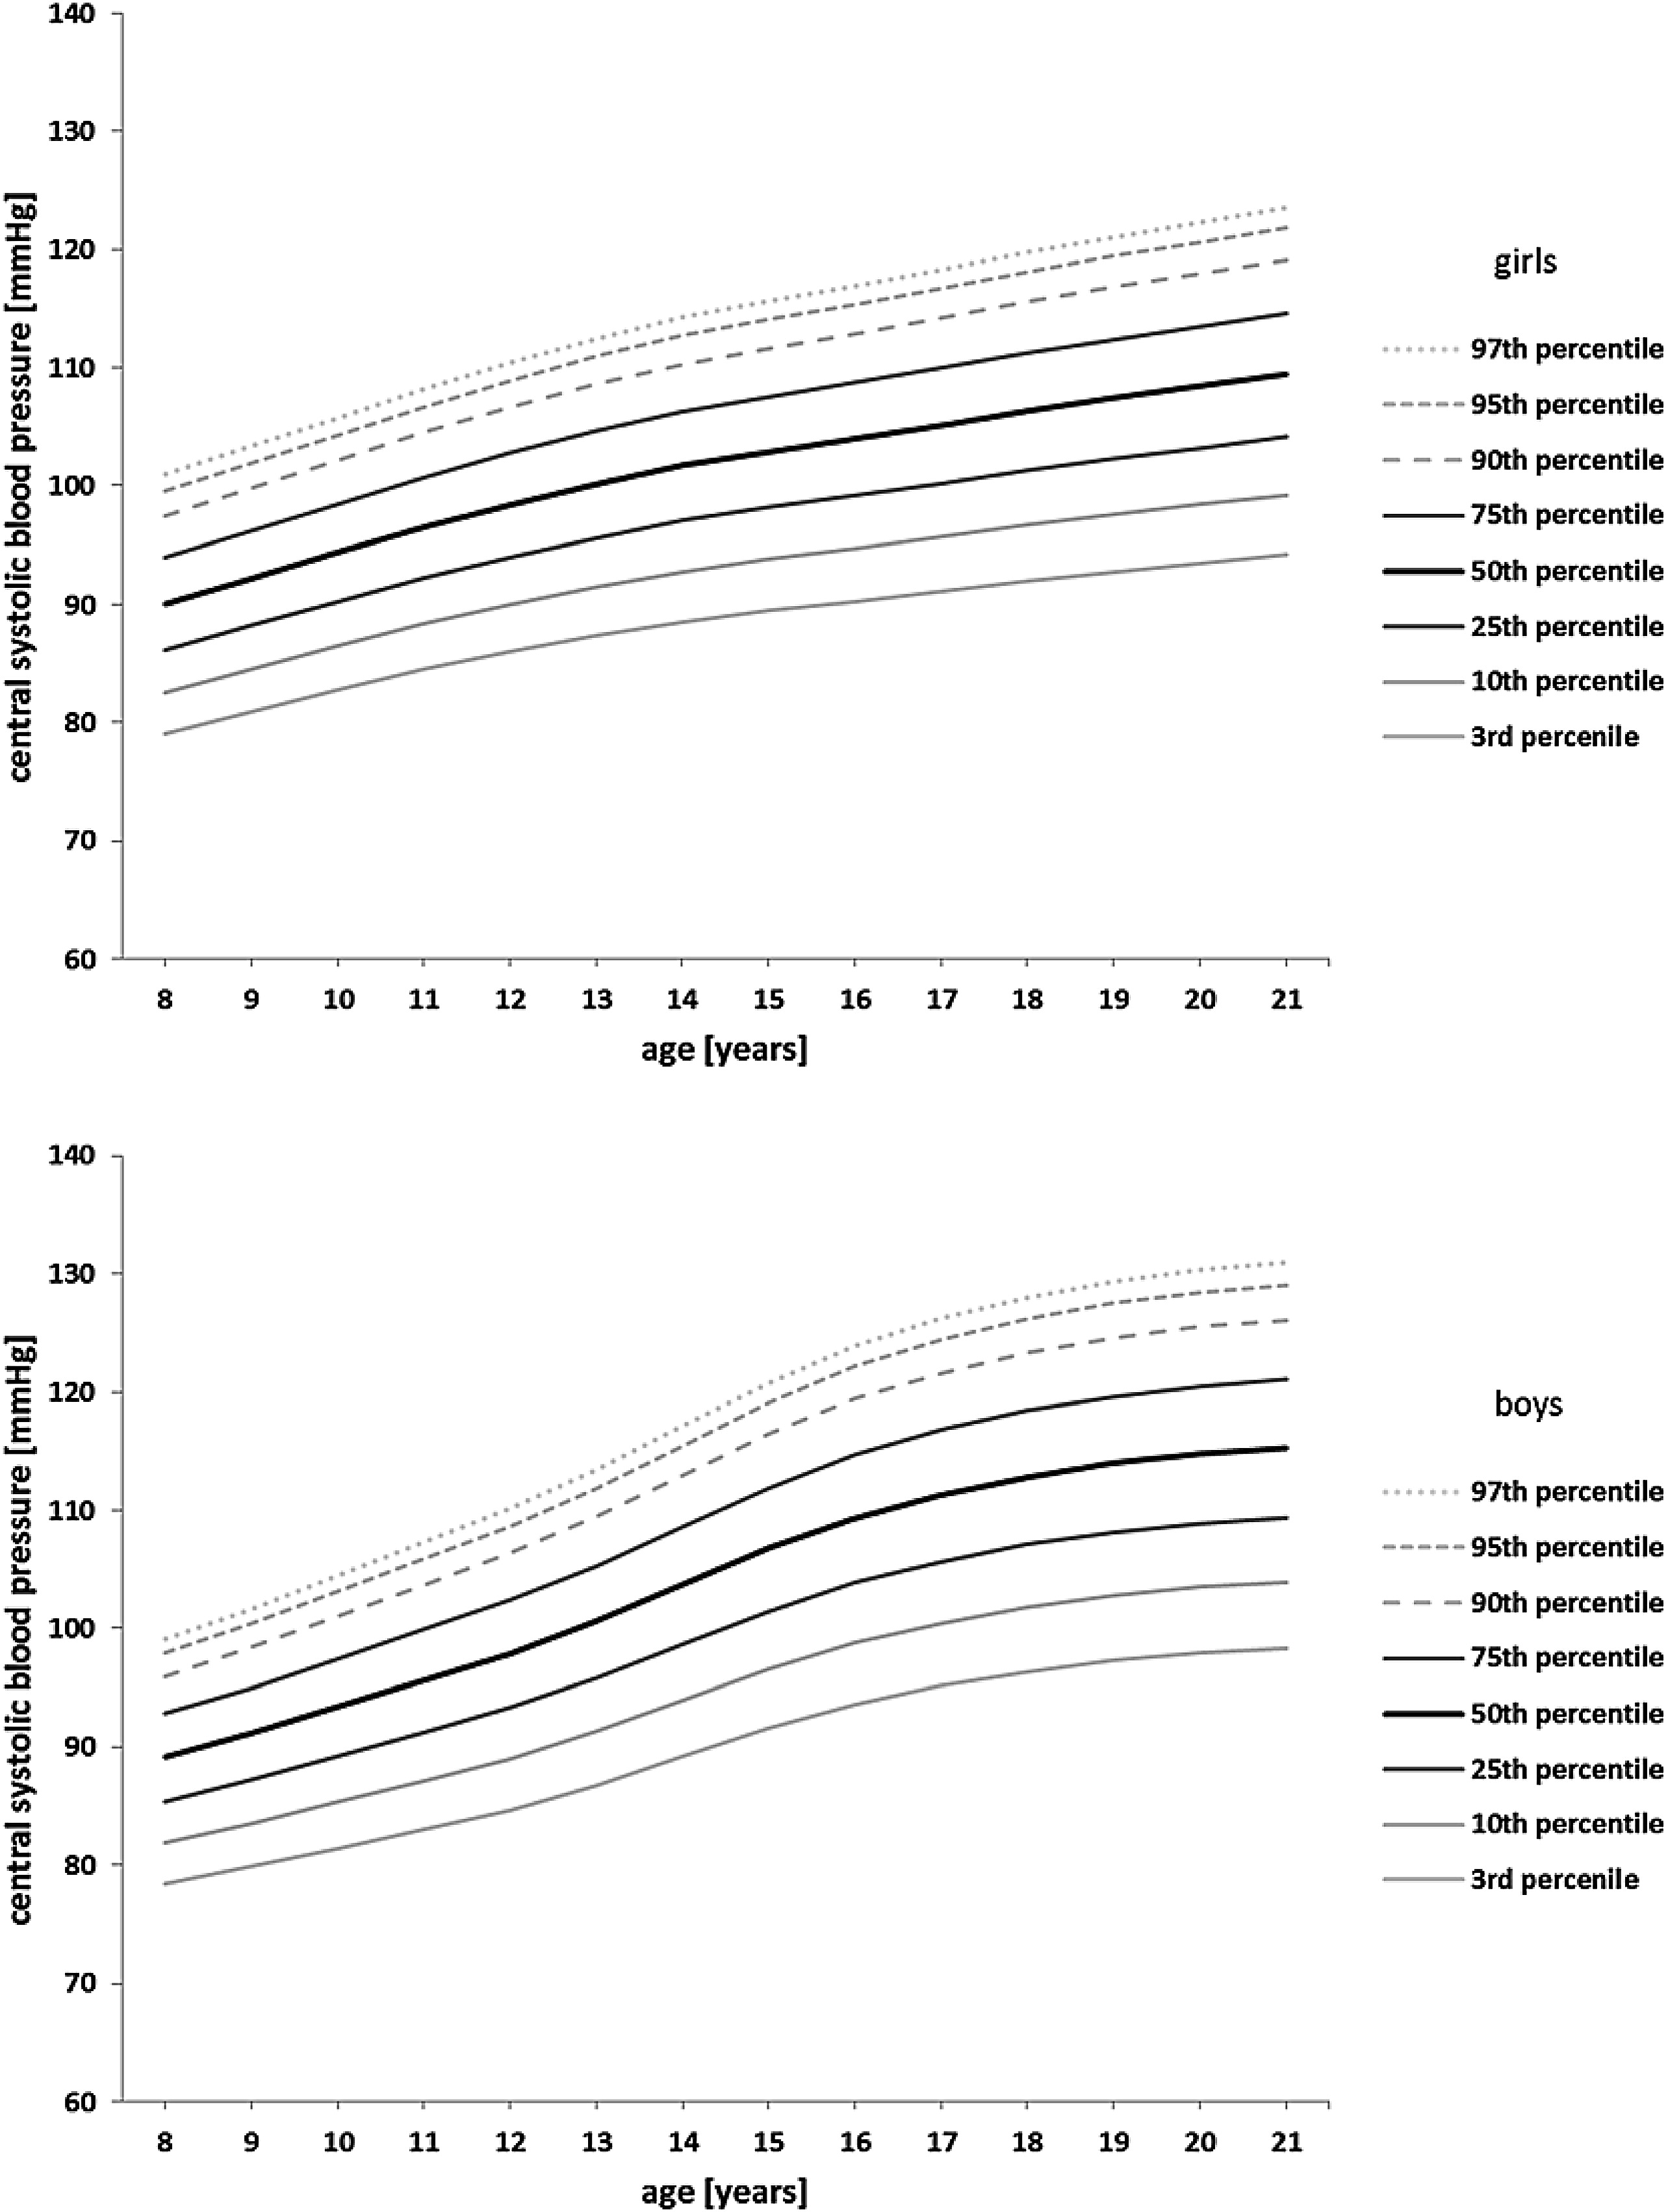 Percentiles for central blood pressure and pulse wave